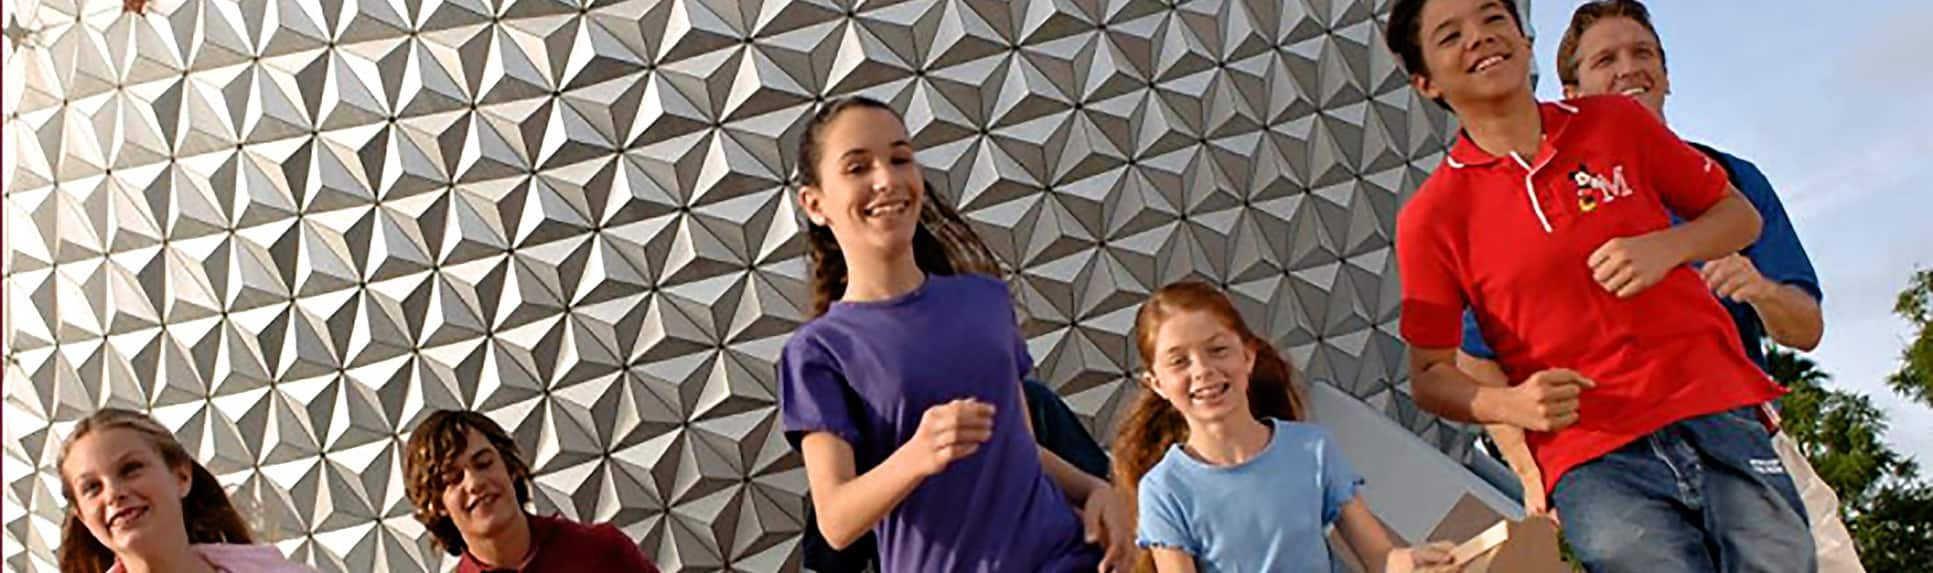 Smiling children at Epcot